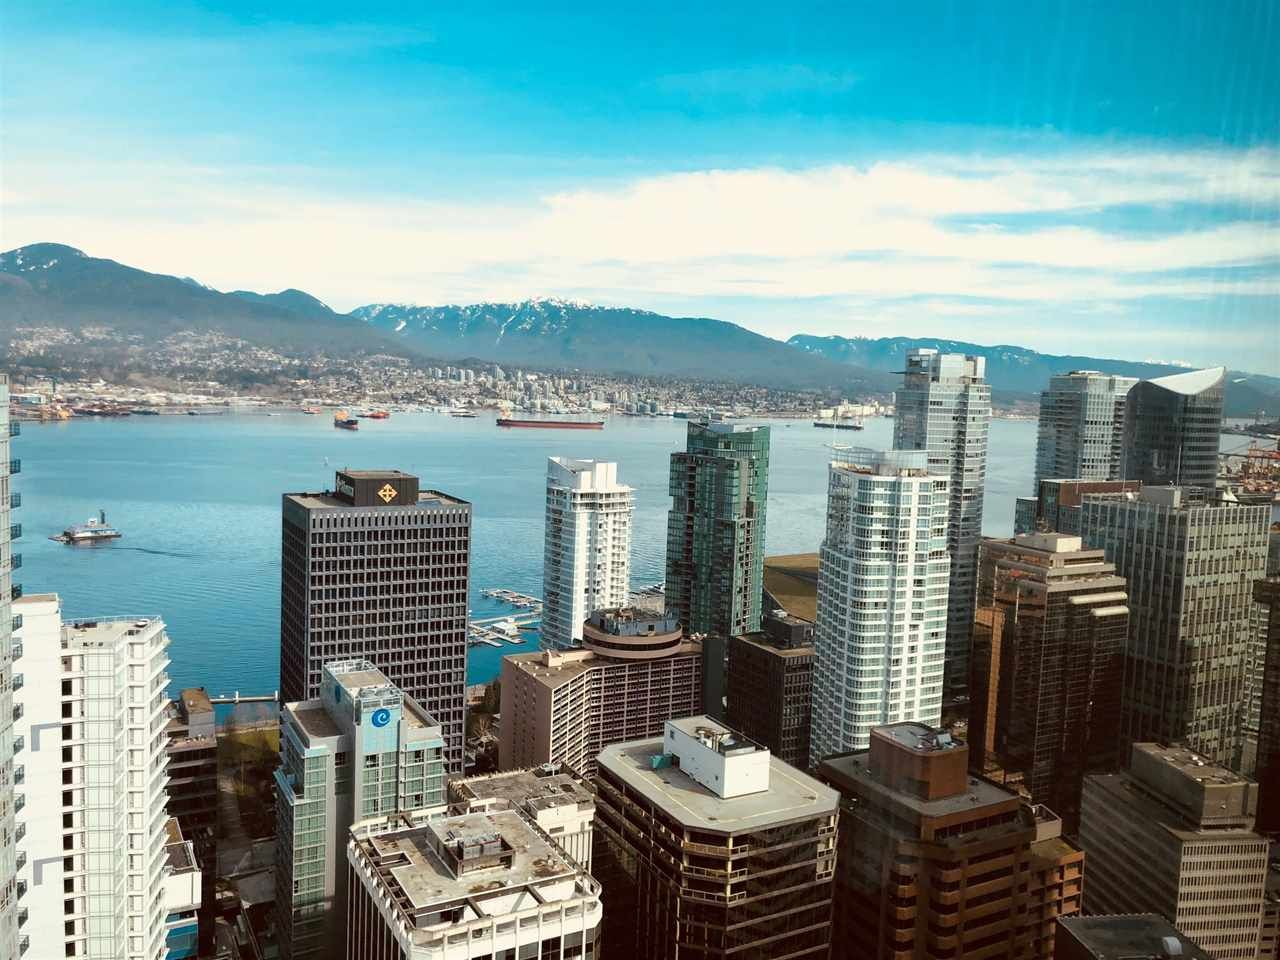 Main Photo: 4505 1151 W GEORGIA STREET in Vancouver: Coal Harbour Condo for sale (Vancouver West)  : MLS®# R2247884